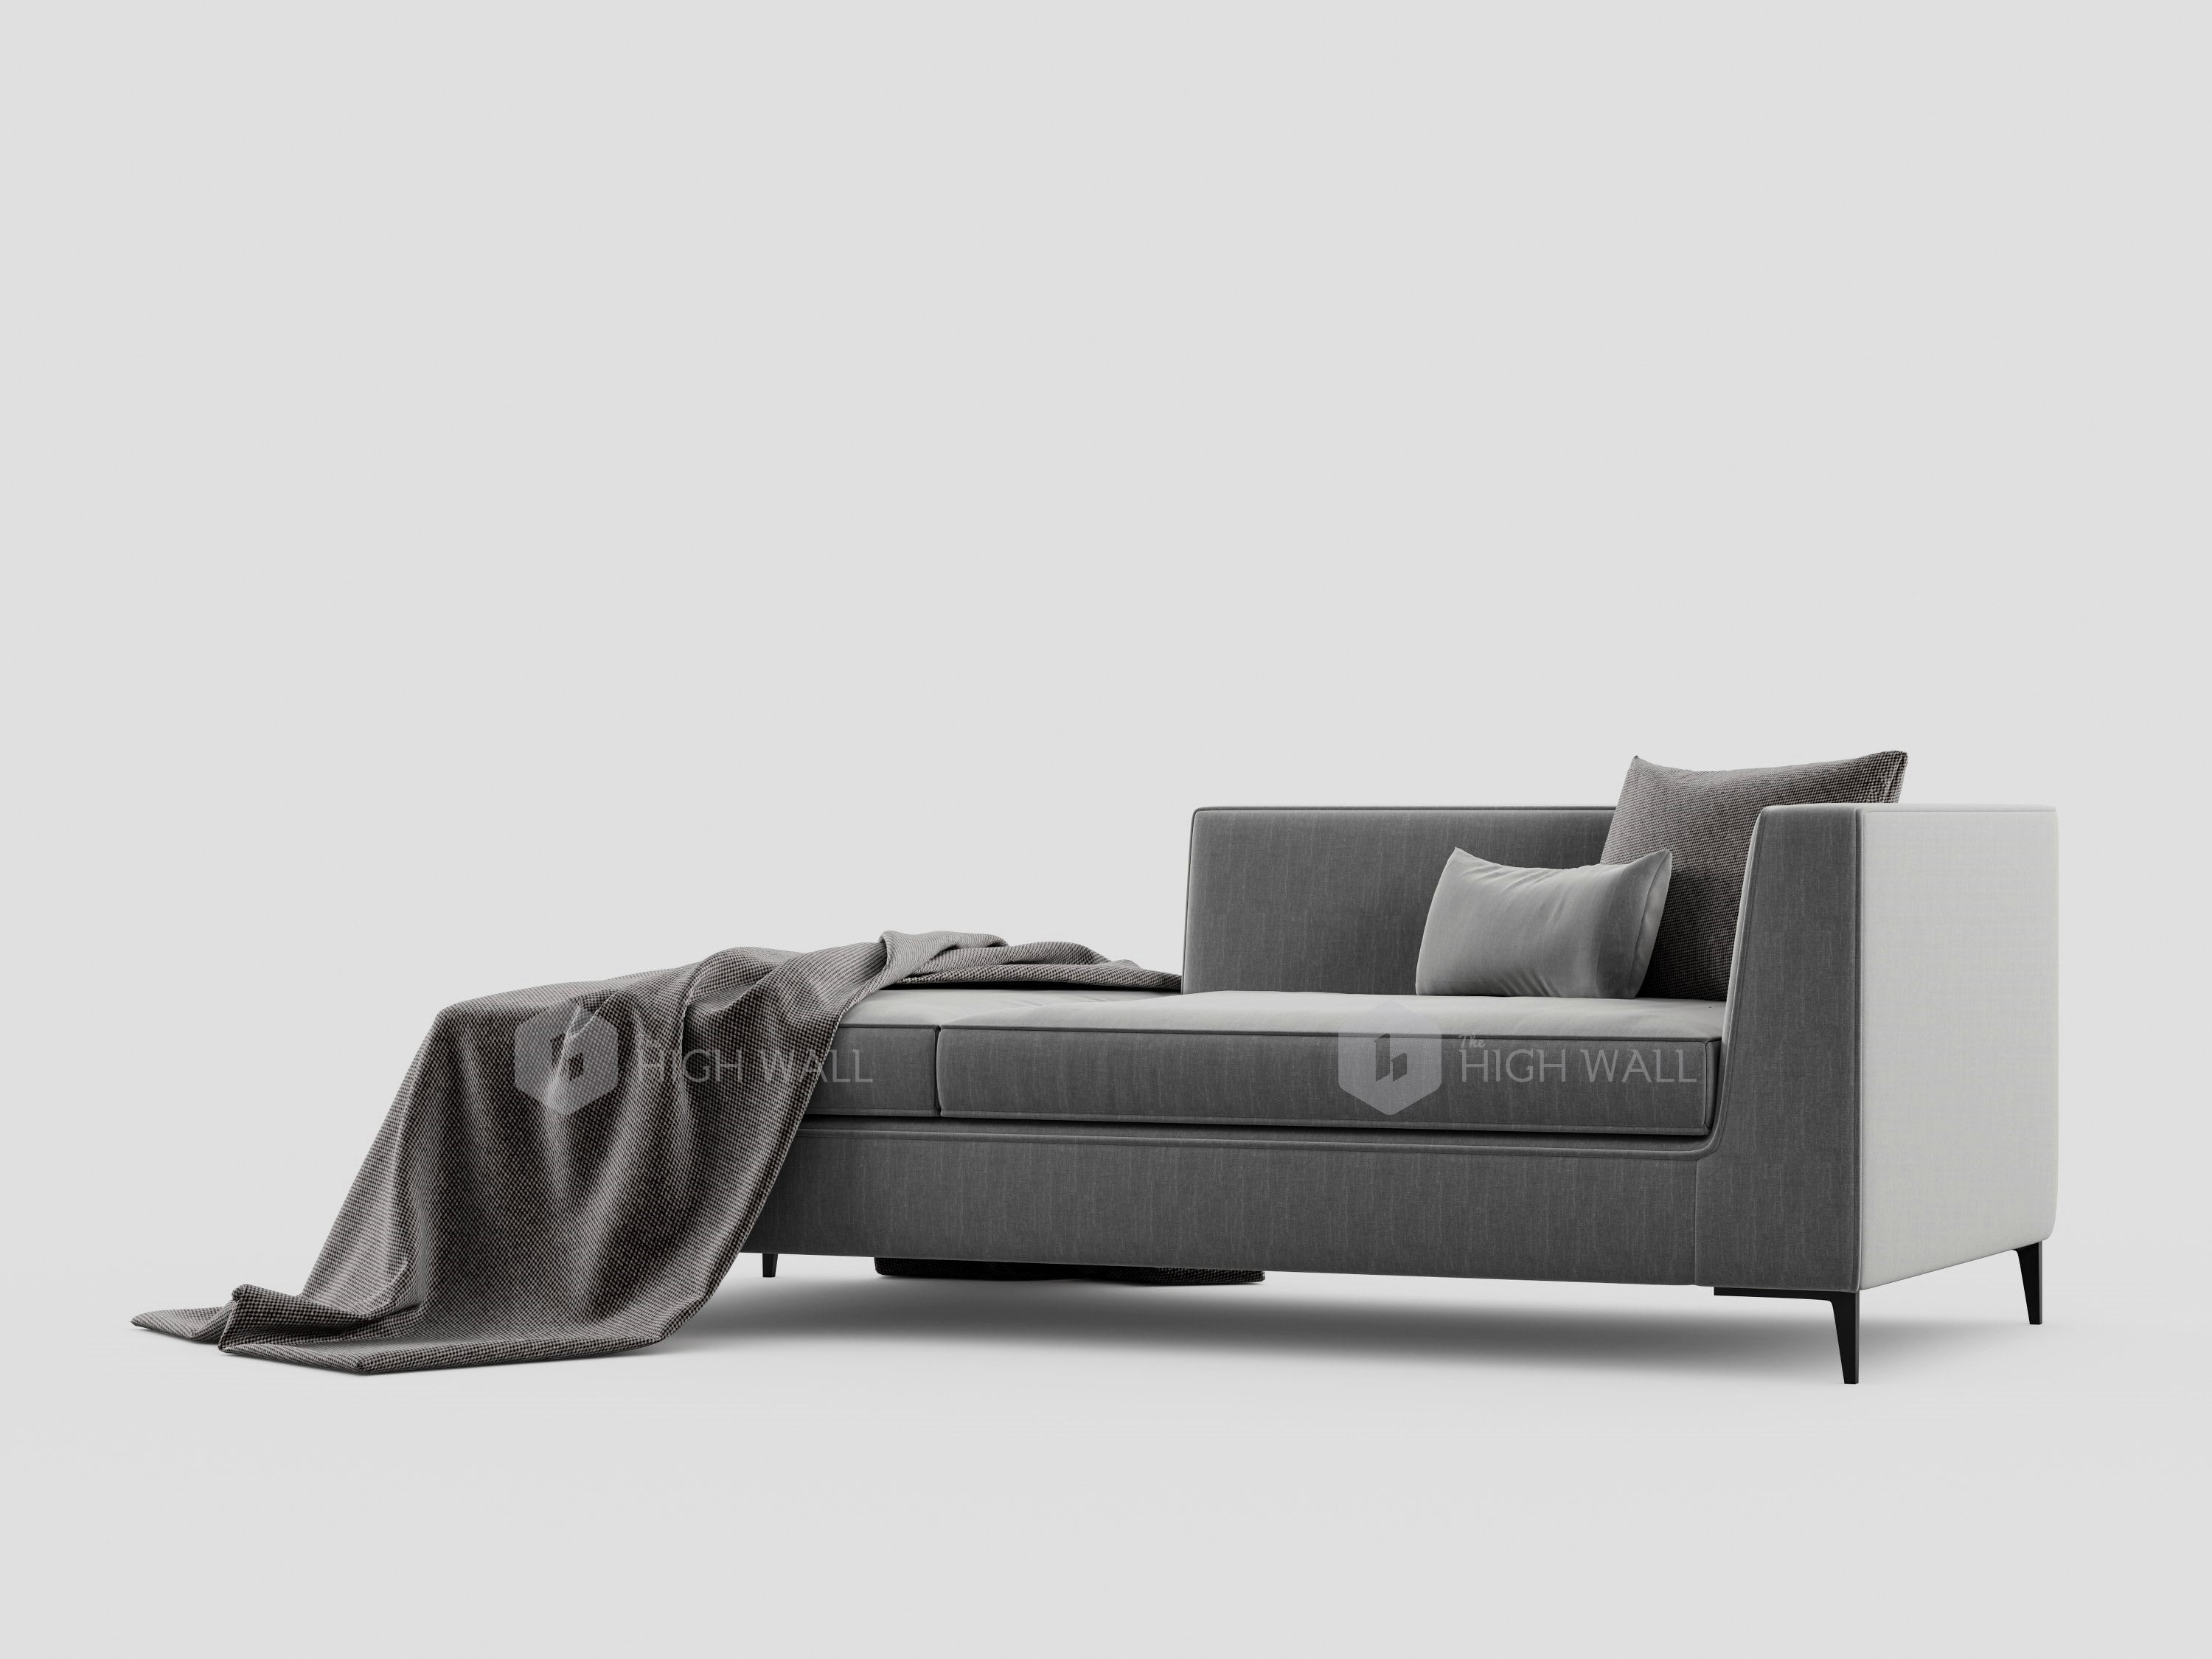 Nicobar - Chaise Lounge